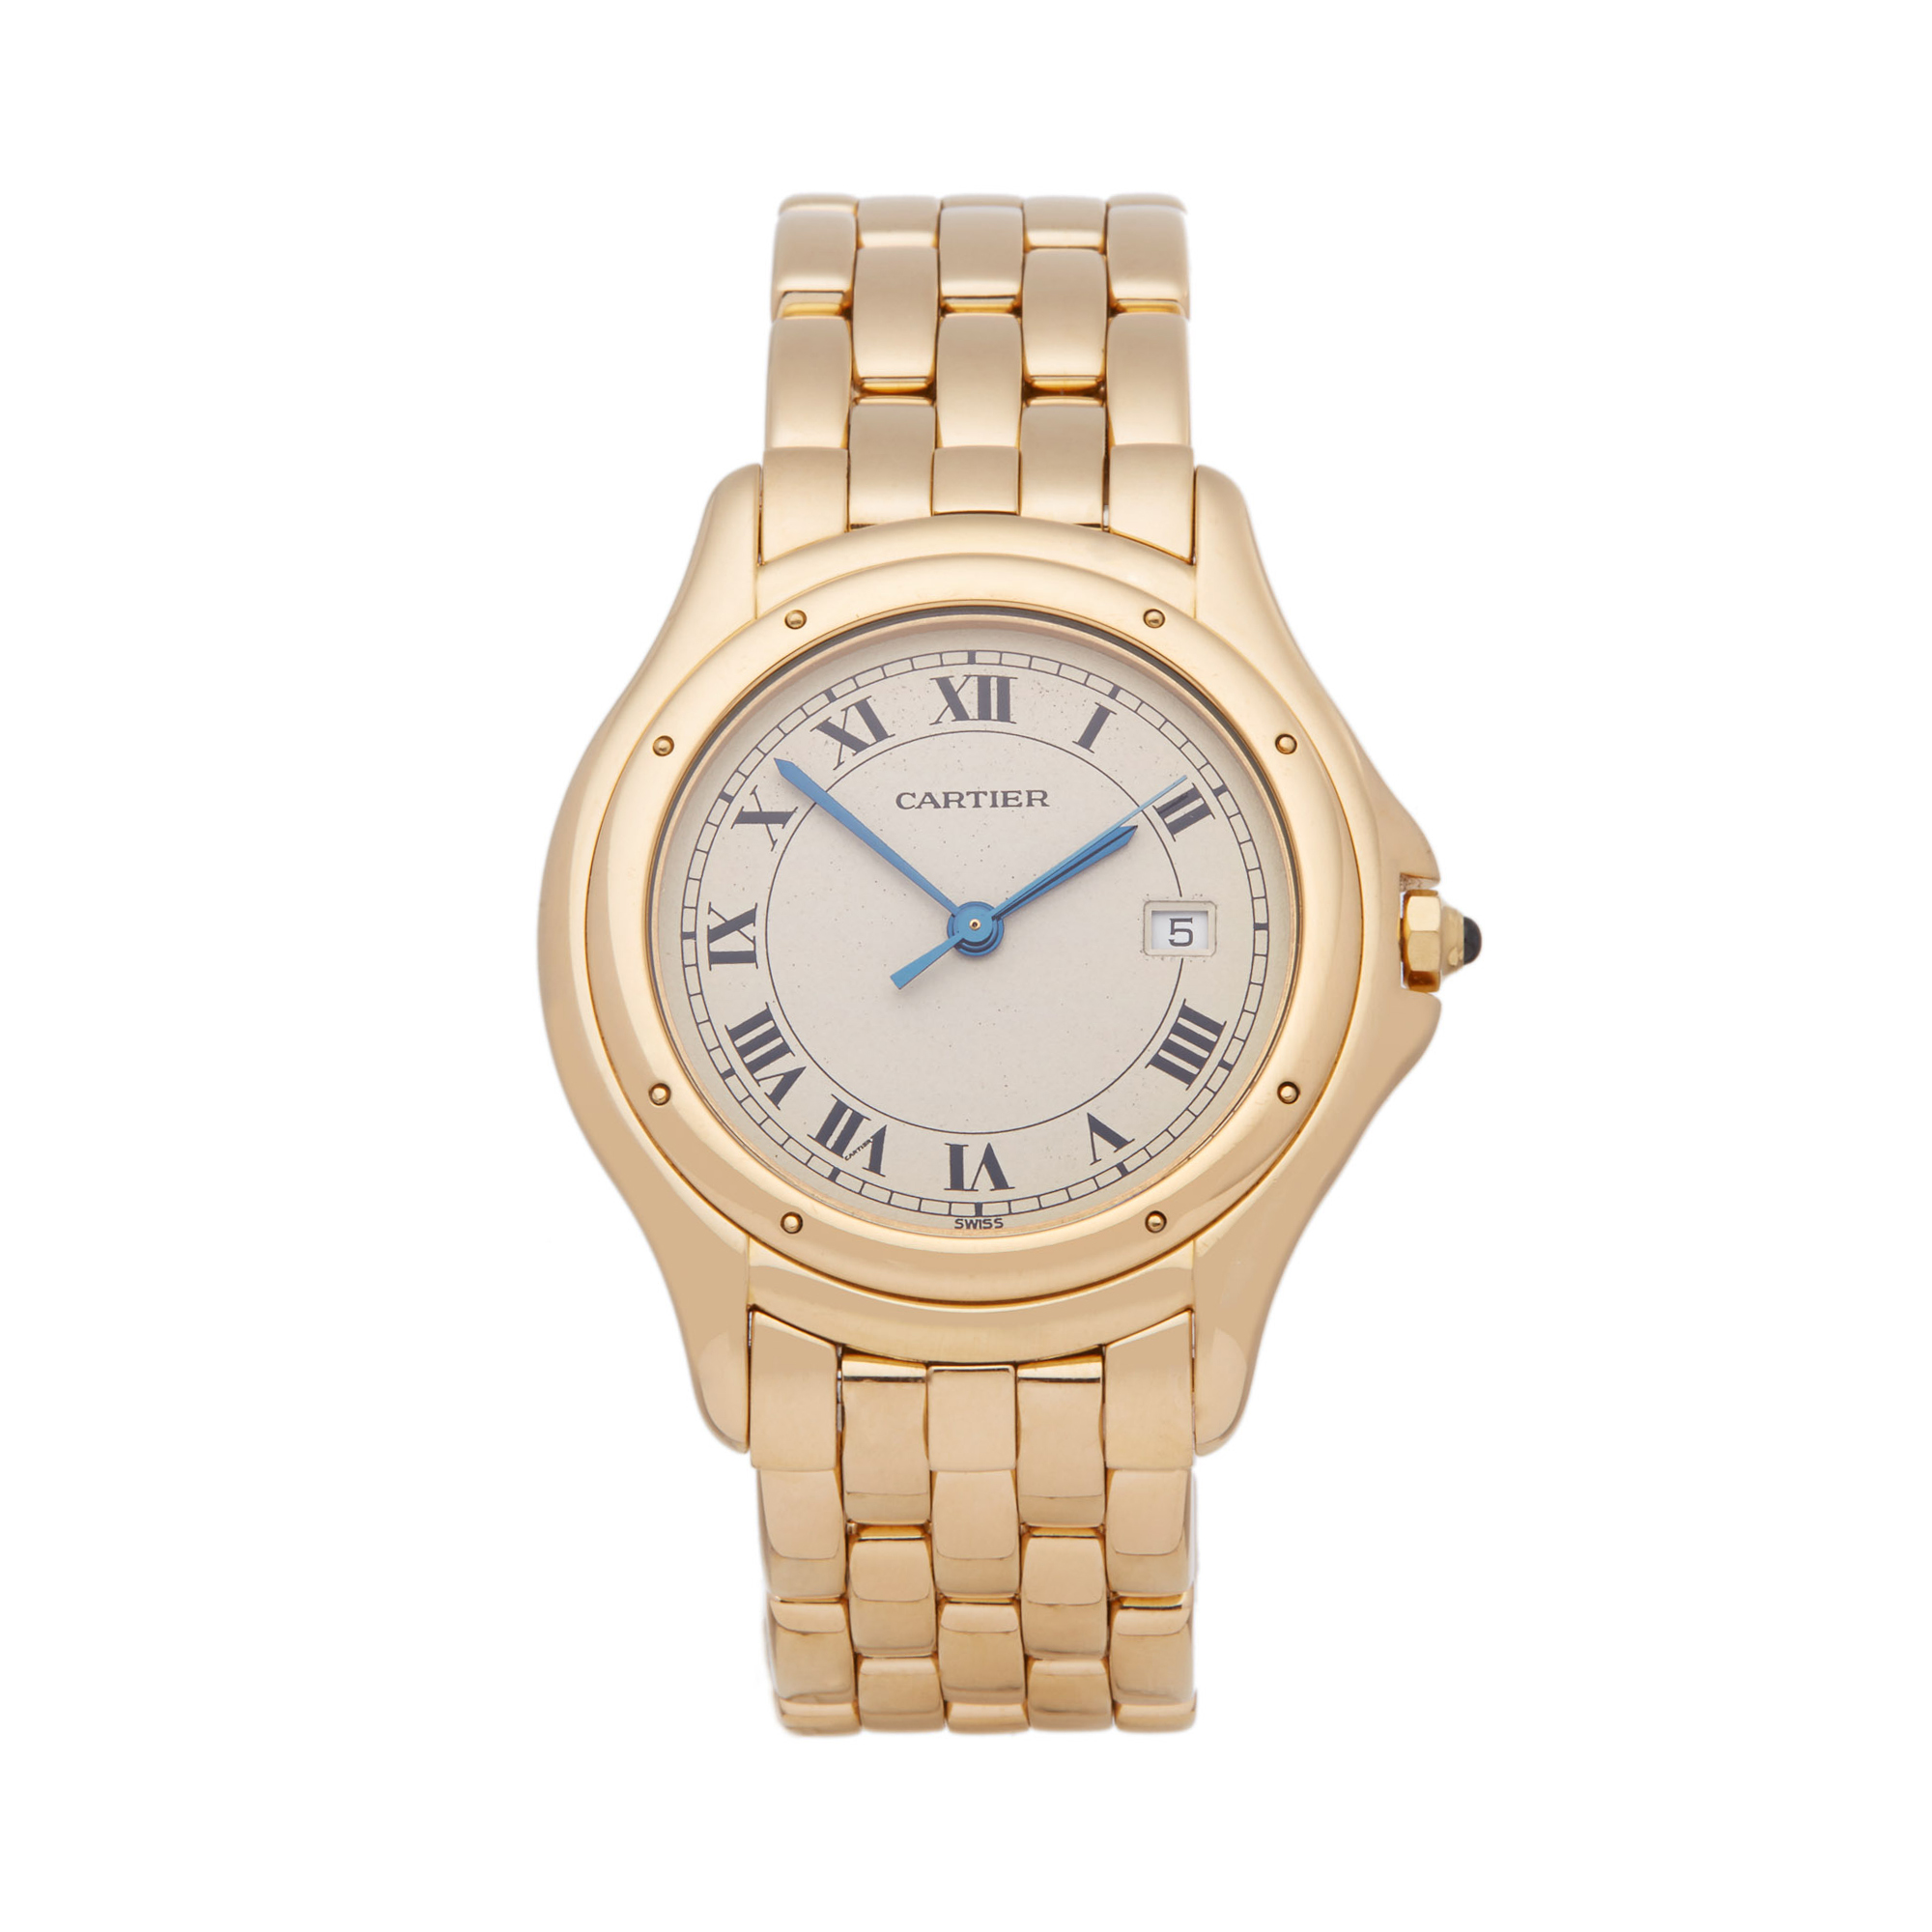 Cartier Panthère Cougar 116000R Unisex Yellow Gold Watch - Image 8 of 8